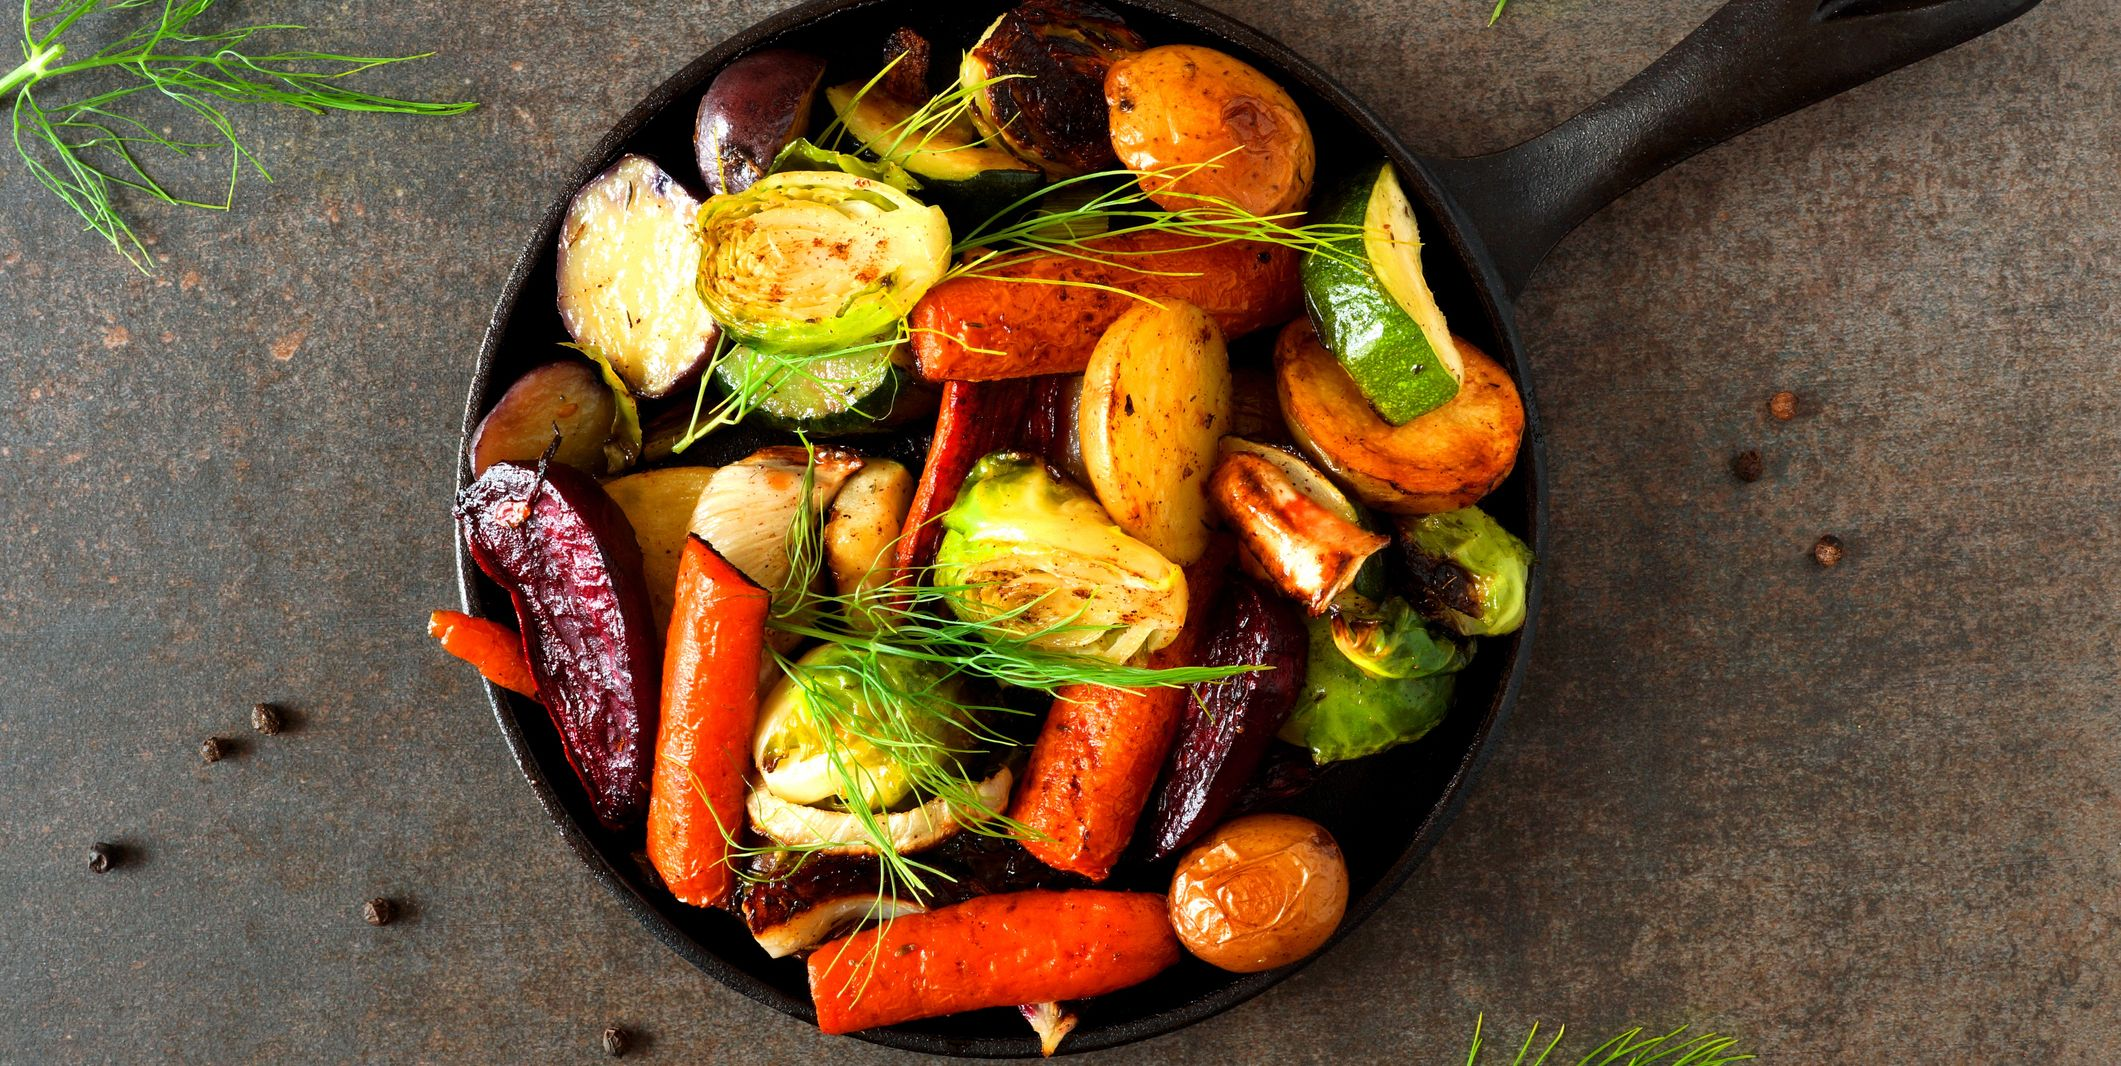 Skillet of roasted vegetables, above view on dark stone